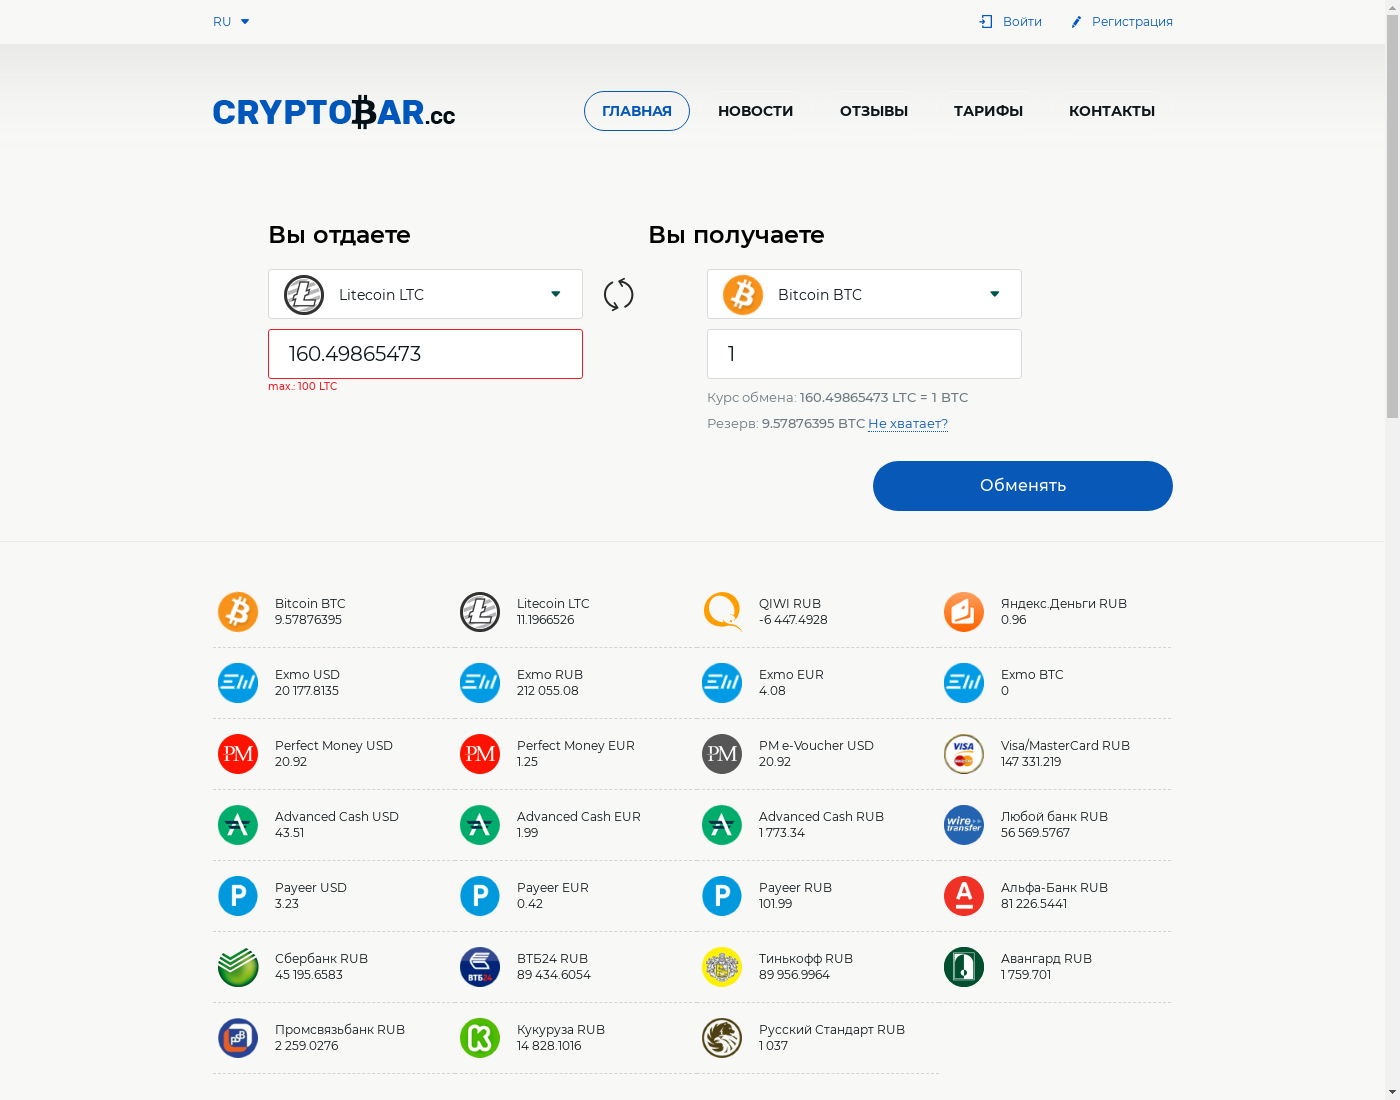 cryptoBar user interface: the home page in English